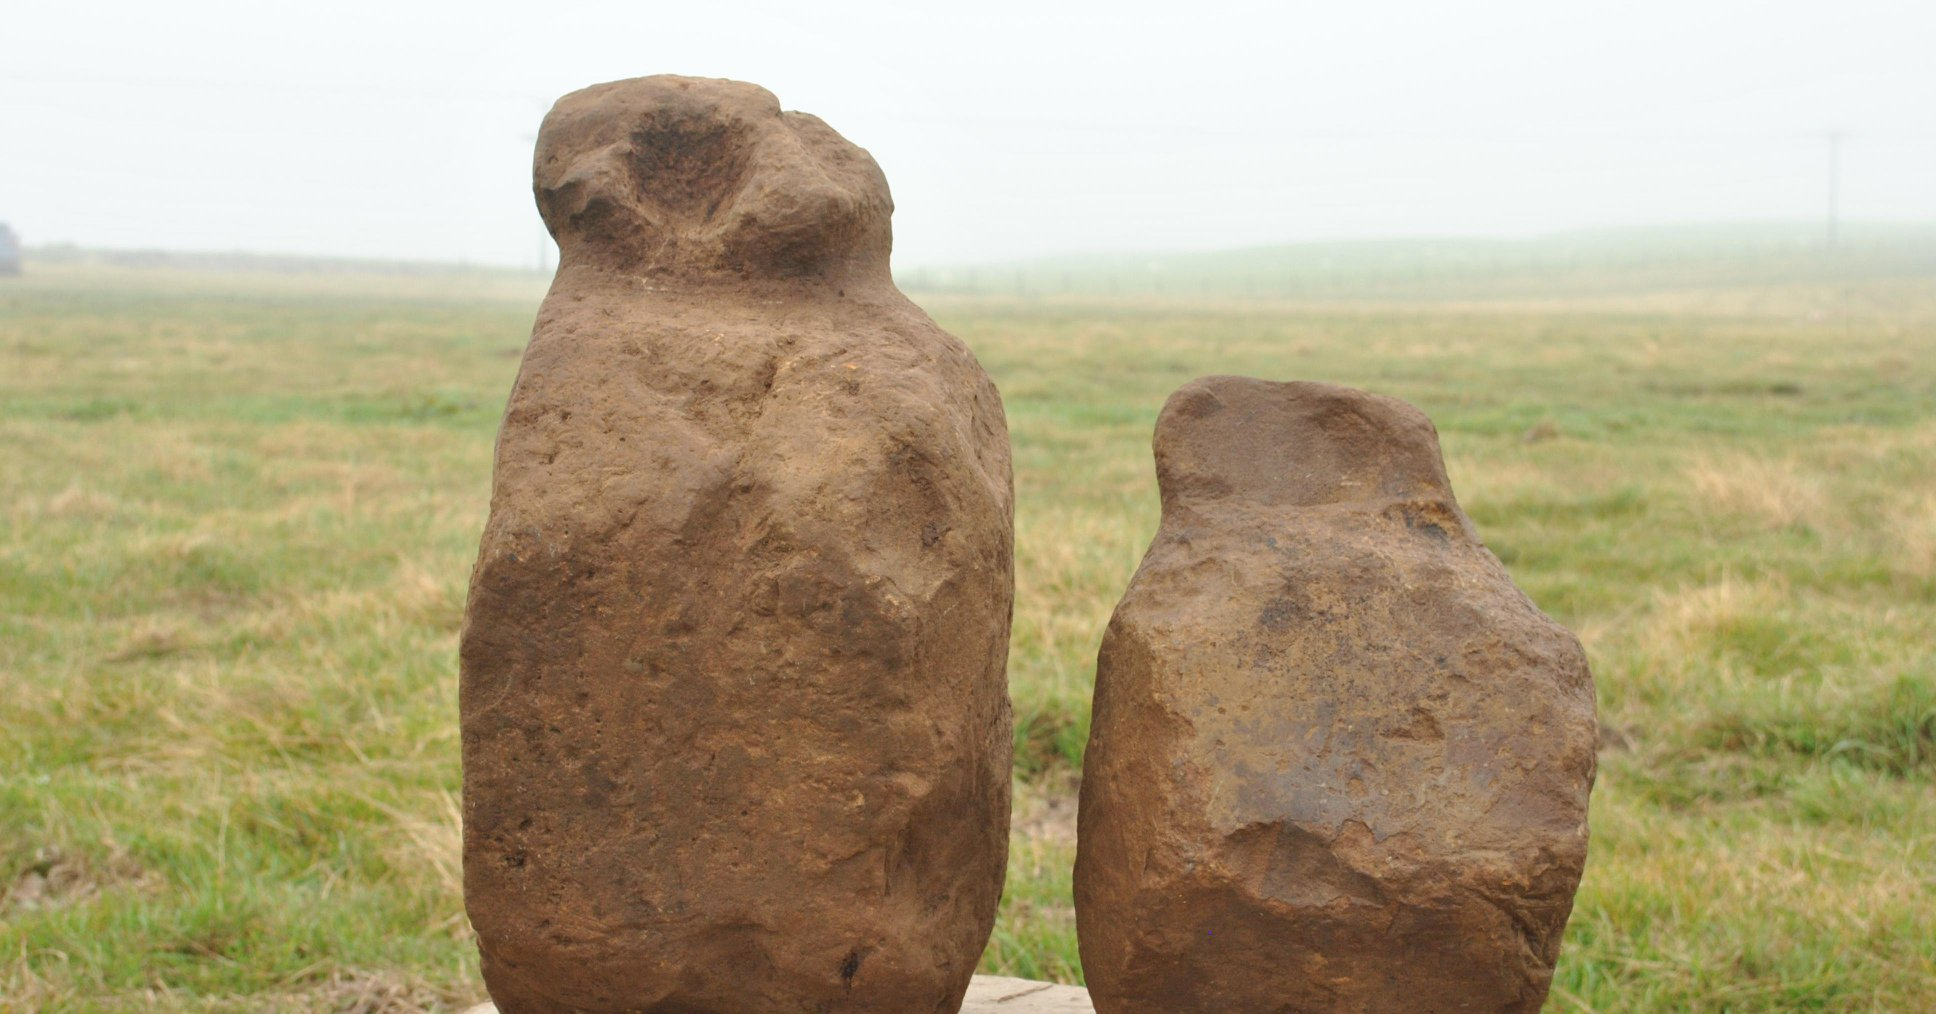 The ORCA Archaeology team discovered nine possible Bronze Age figurines with some over half-metre tall.